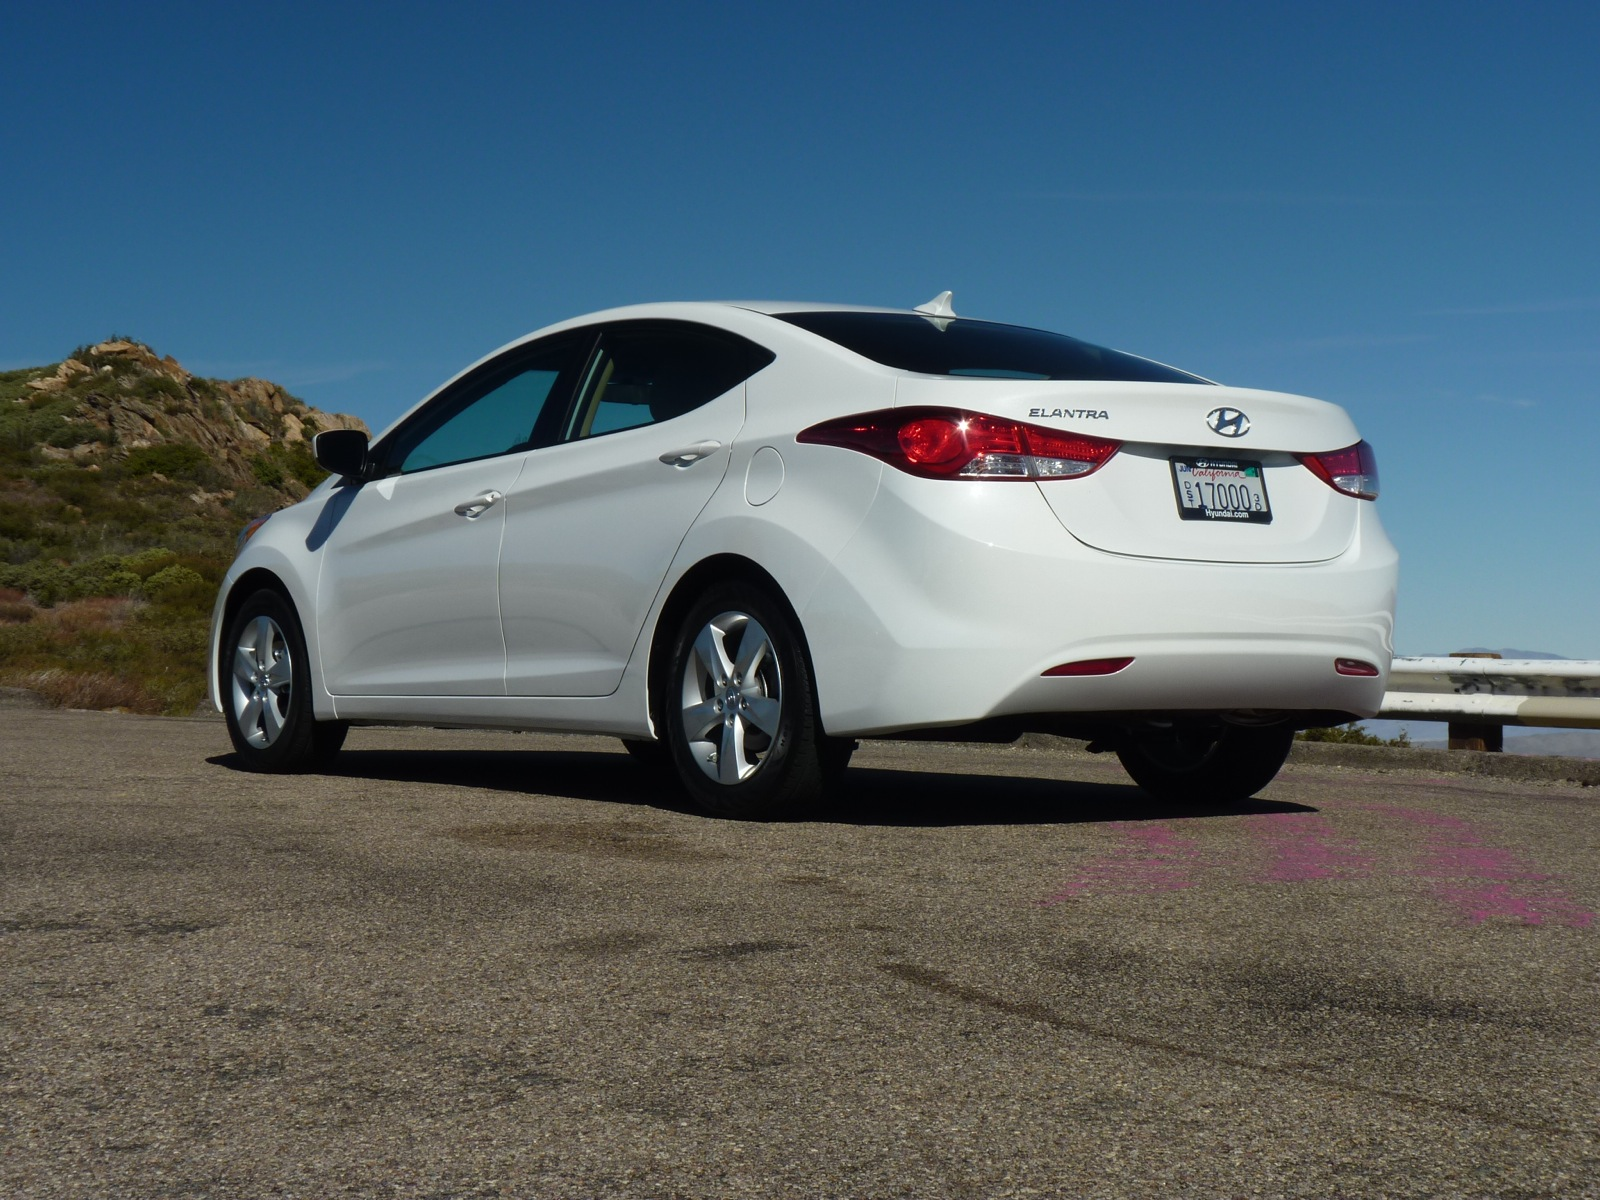 sale indianapolis for copart hybrid at cars hyundai lot sonata in